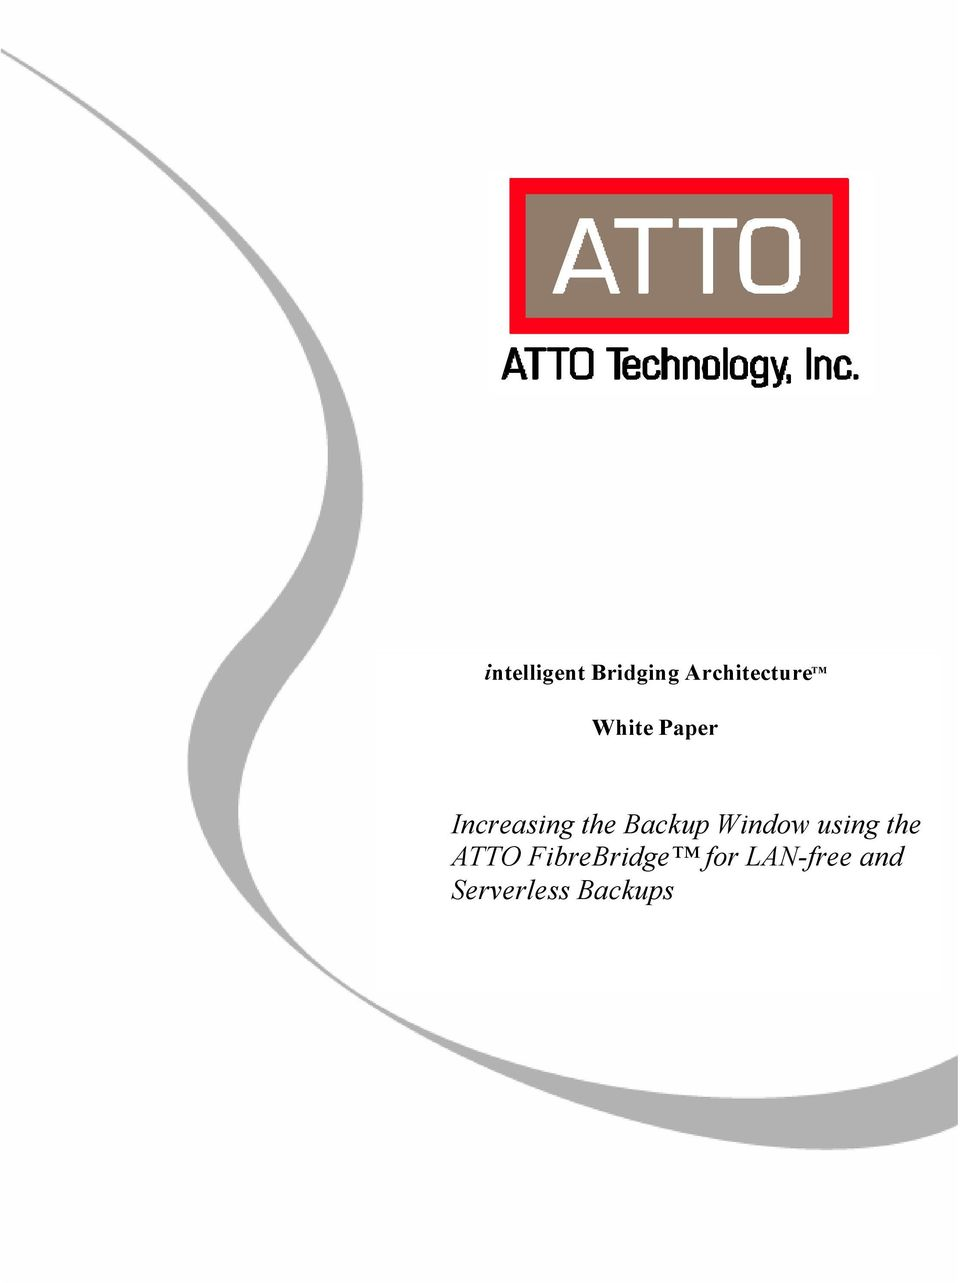 Backup Window using the ATTO